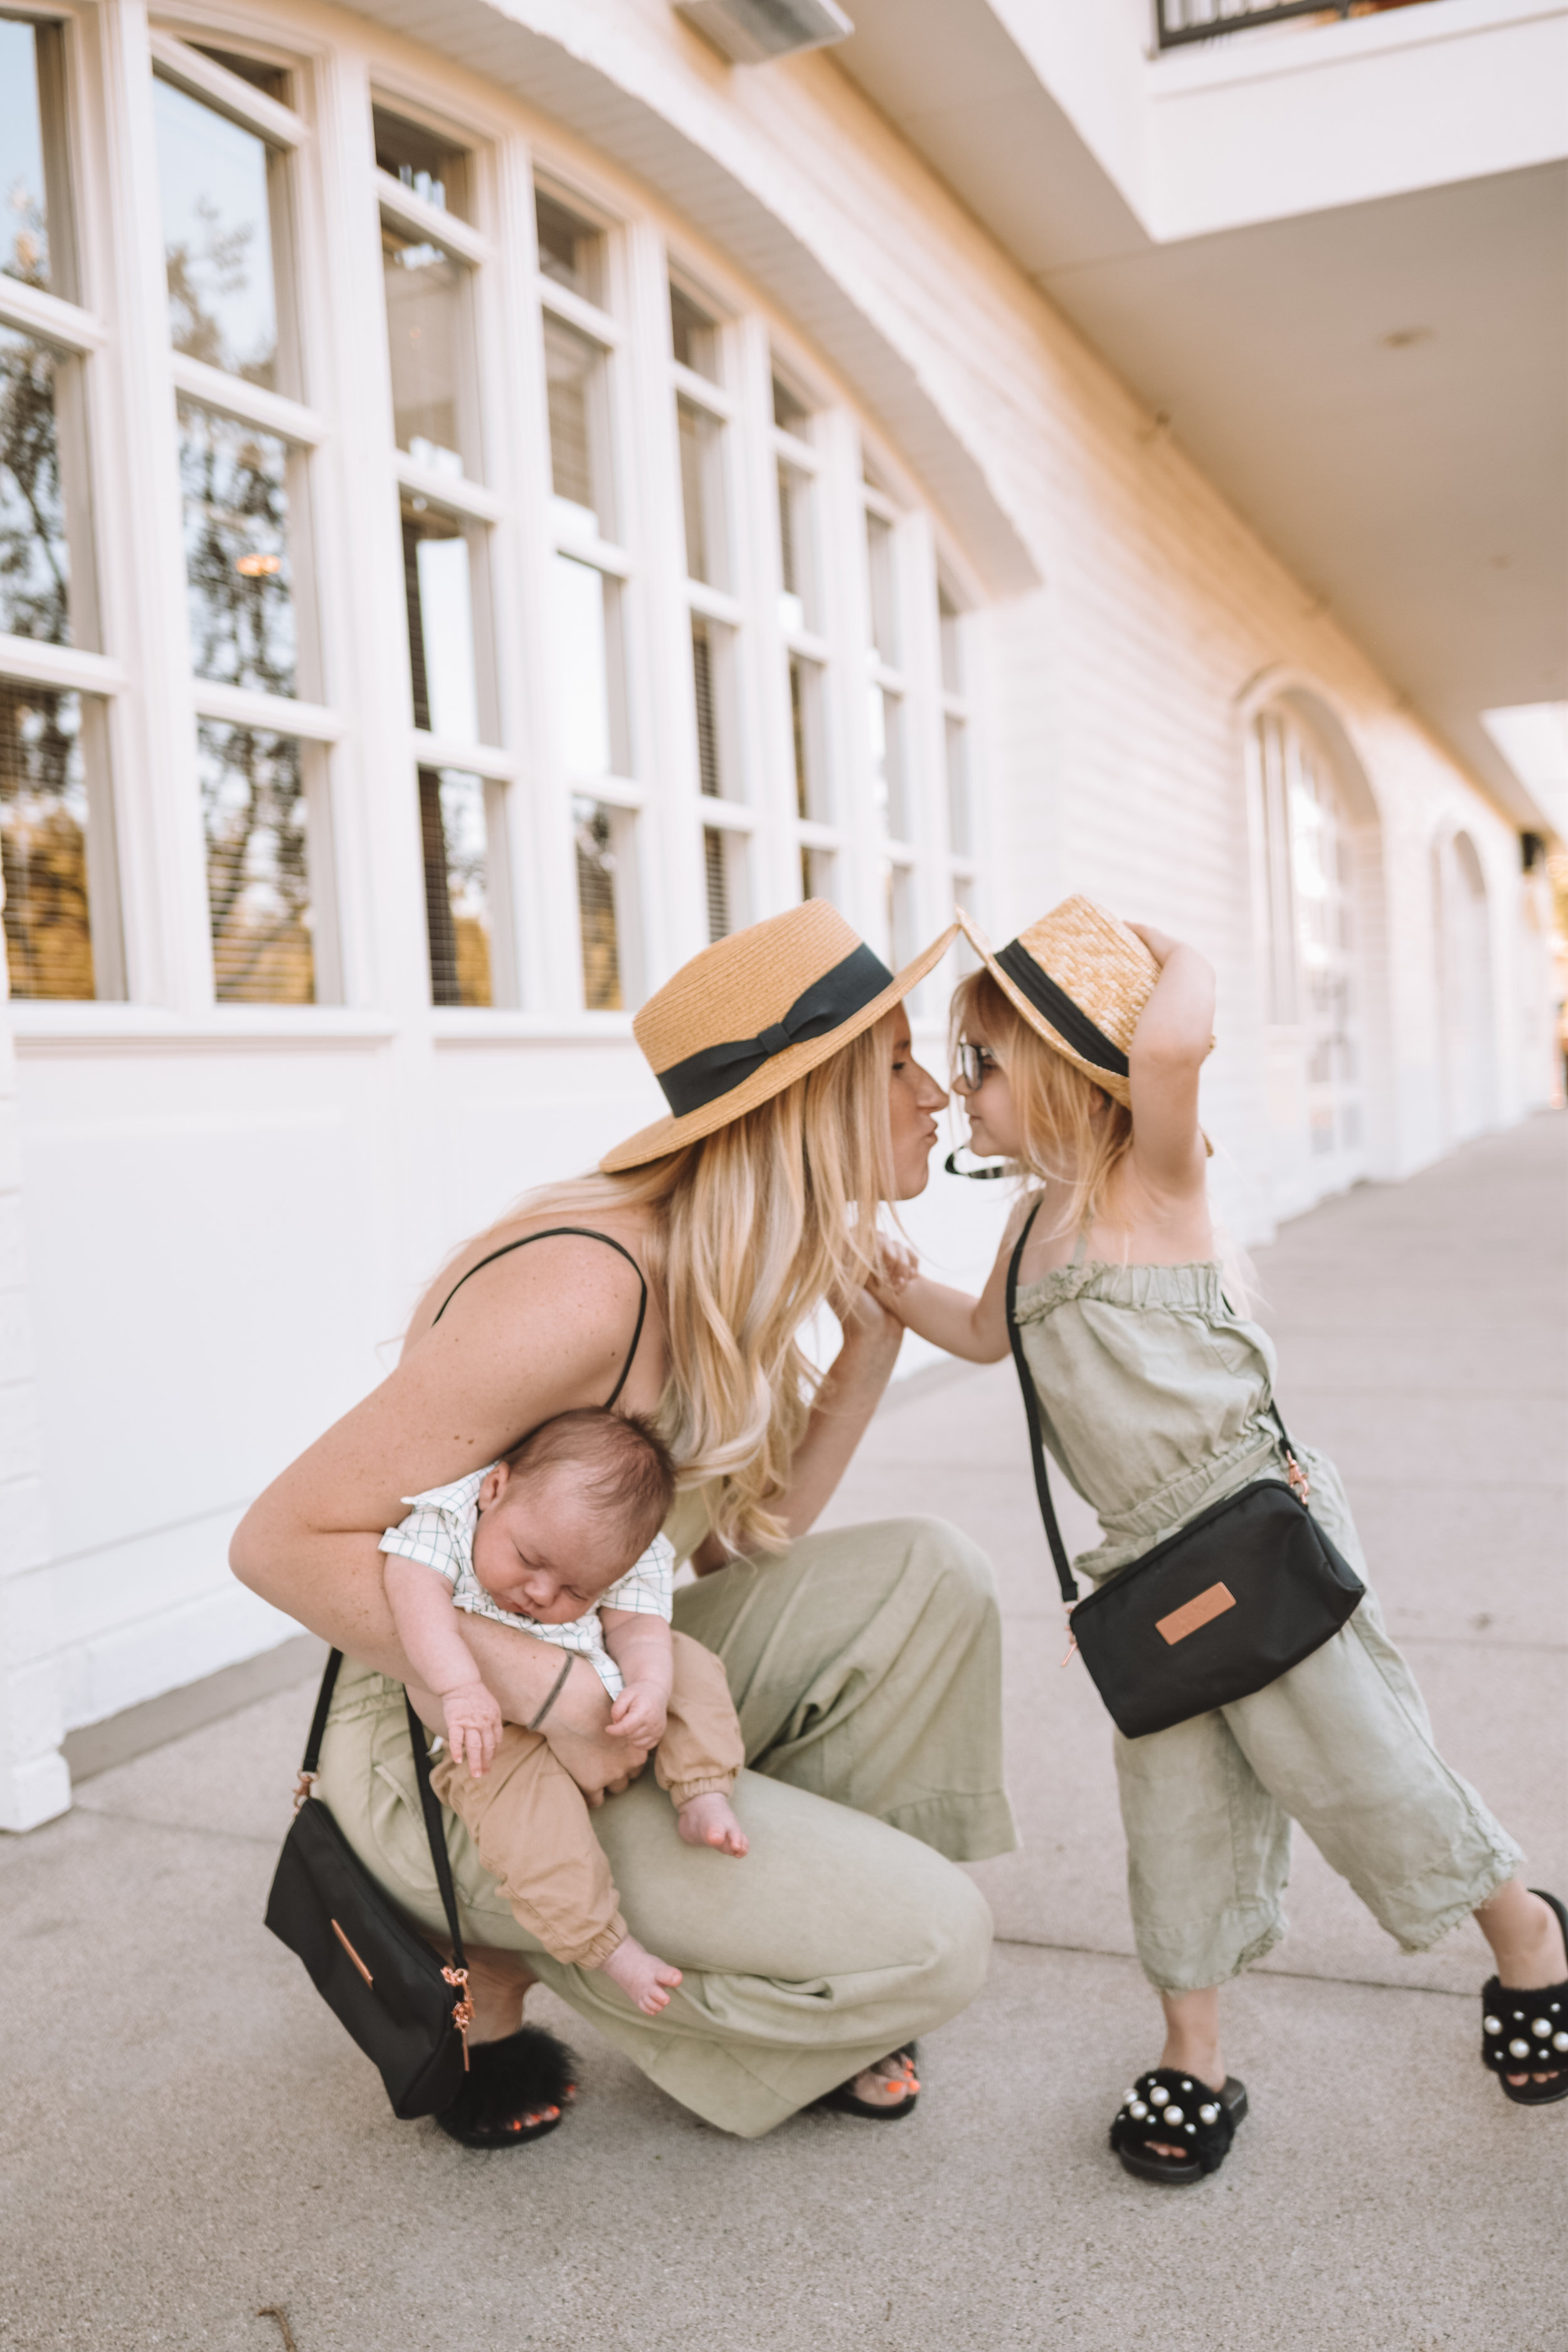 7 Non-Material Mother's Day Gift Ideas [what moms really want] - The Overwhelmed Mommy Blogger